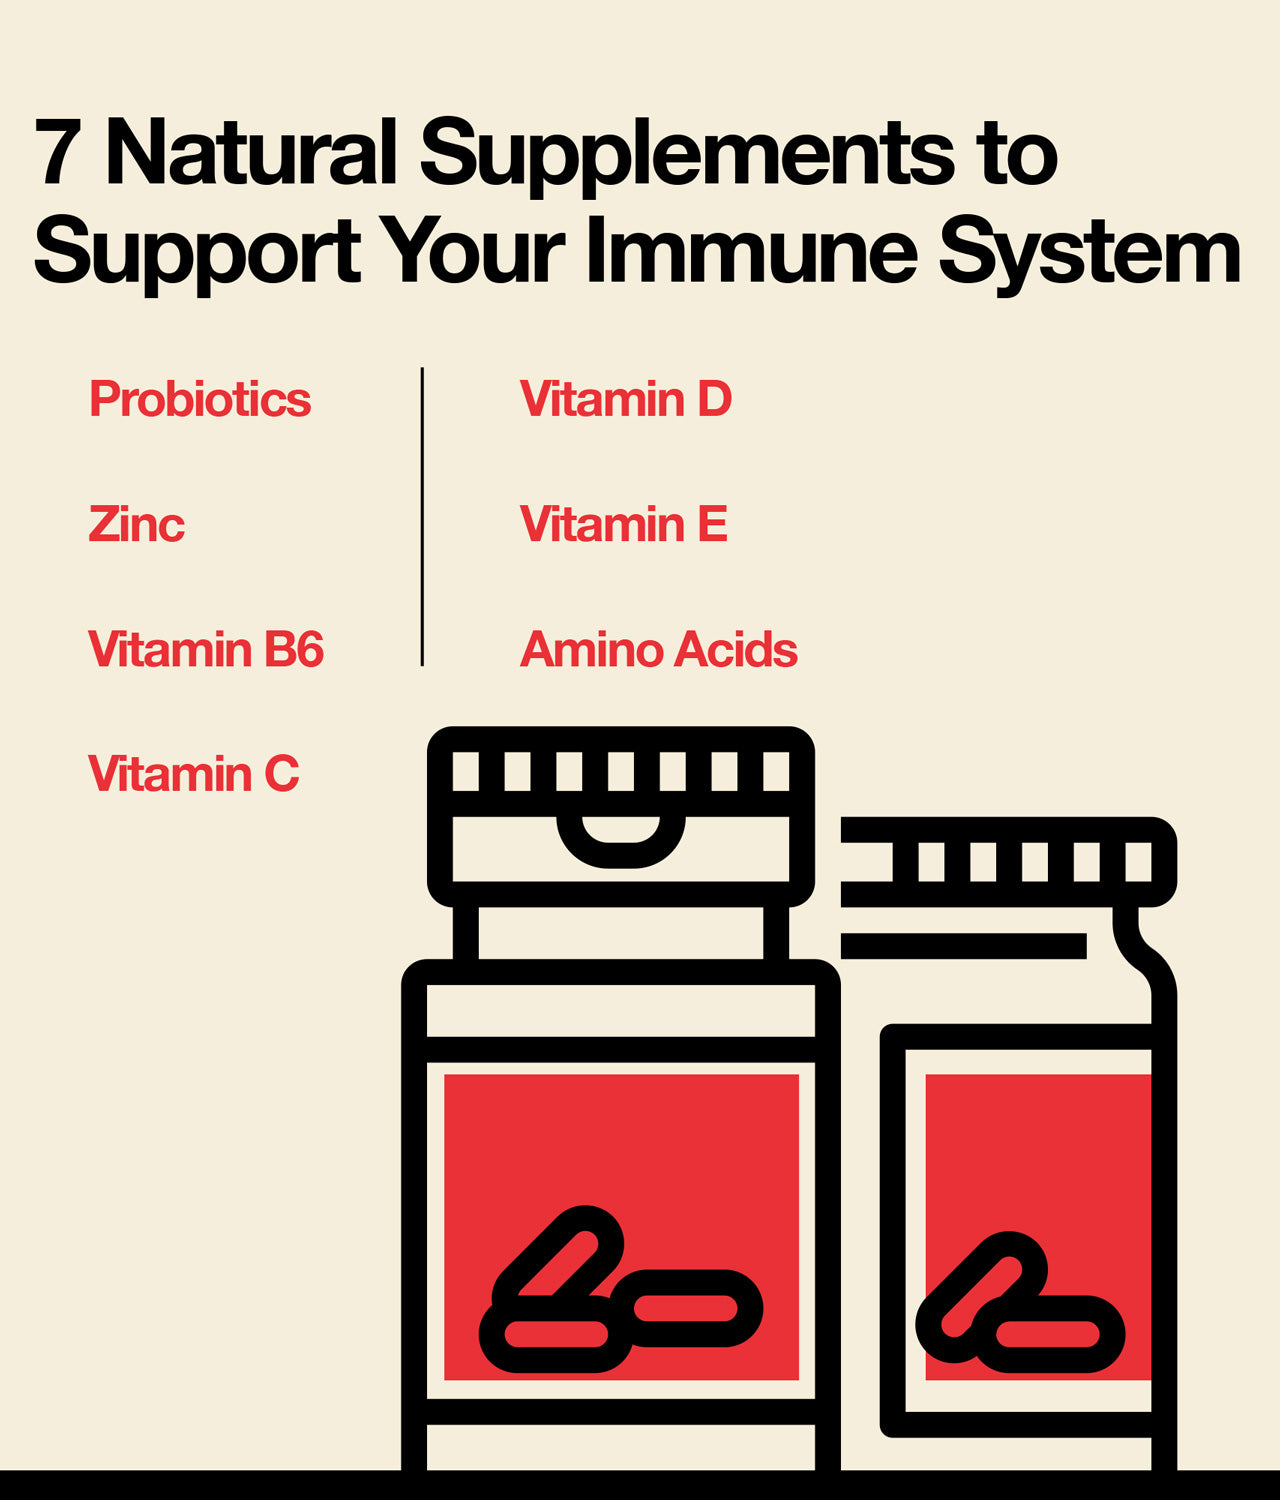 Natural supplements to support immune system